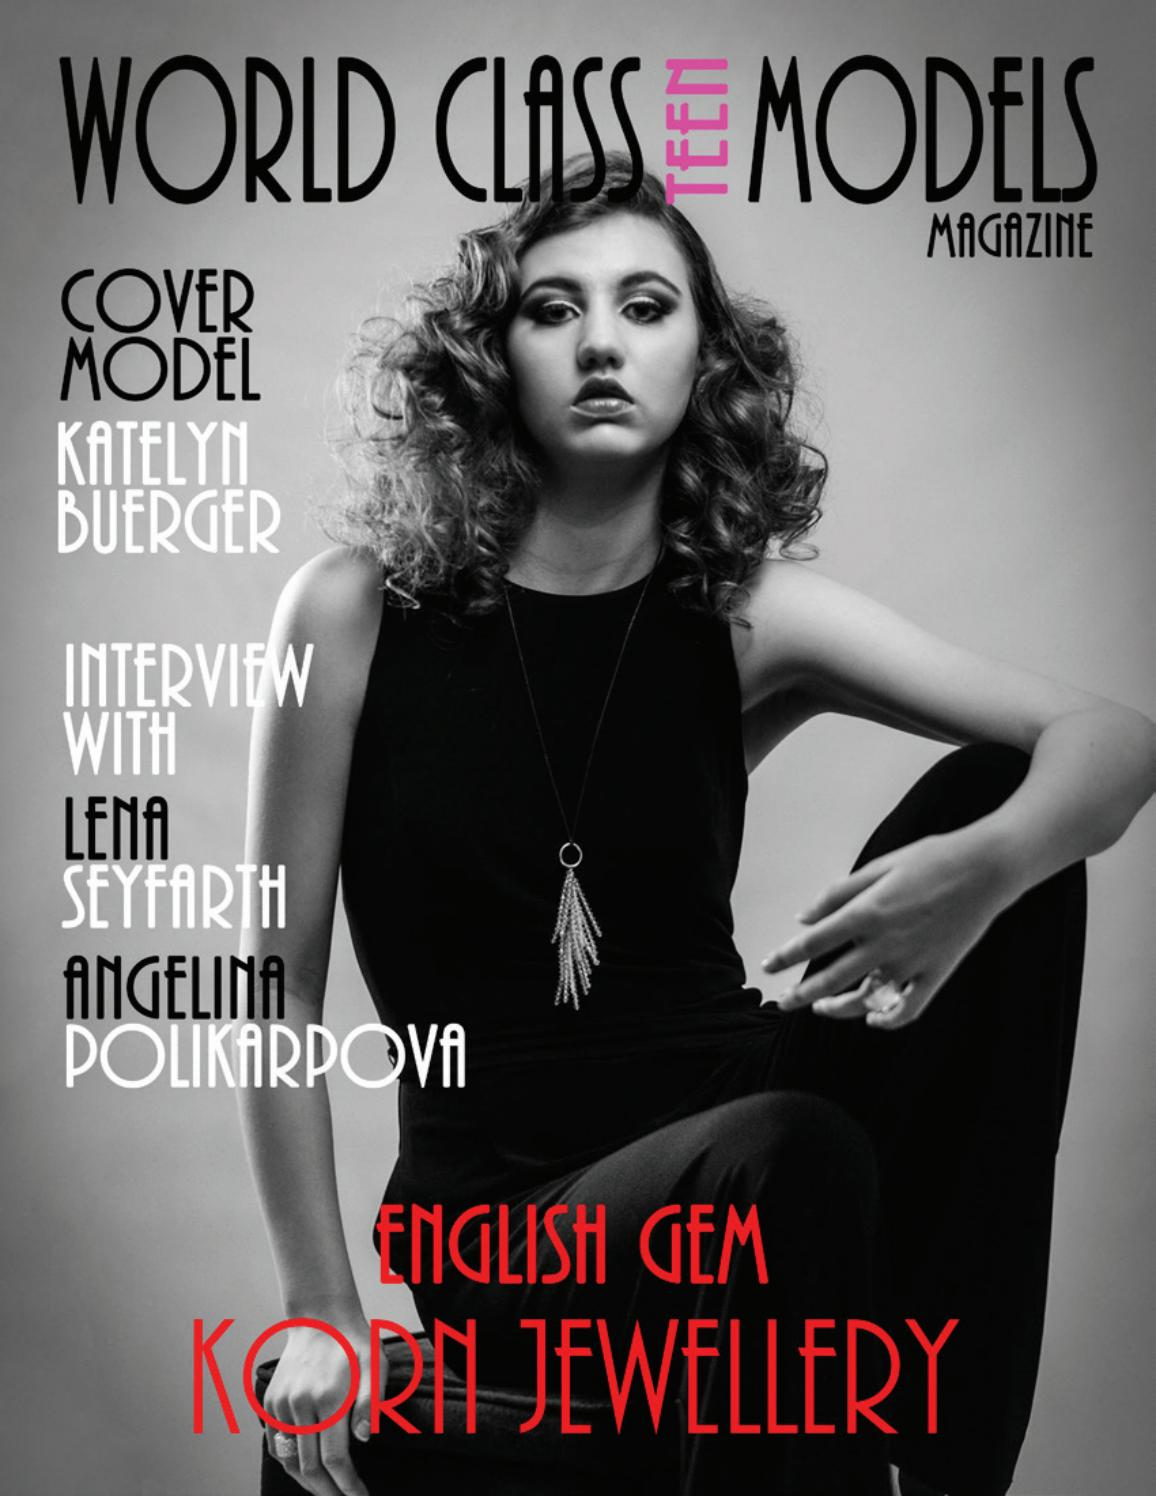 World Class Teen Models Magazine Issue 1 Katelyn Buerger